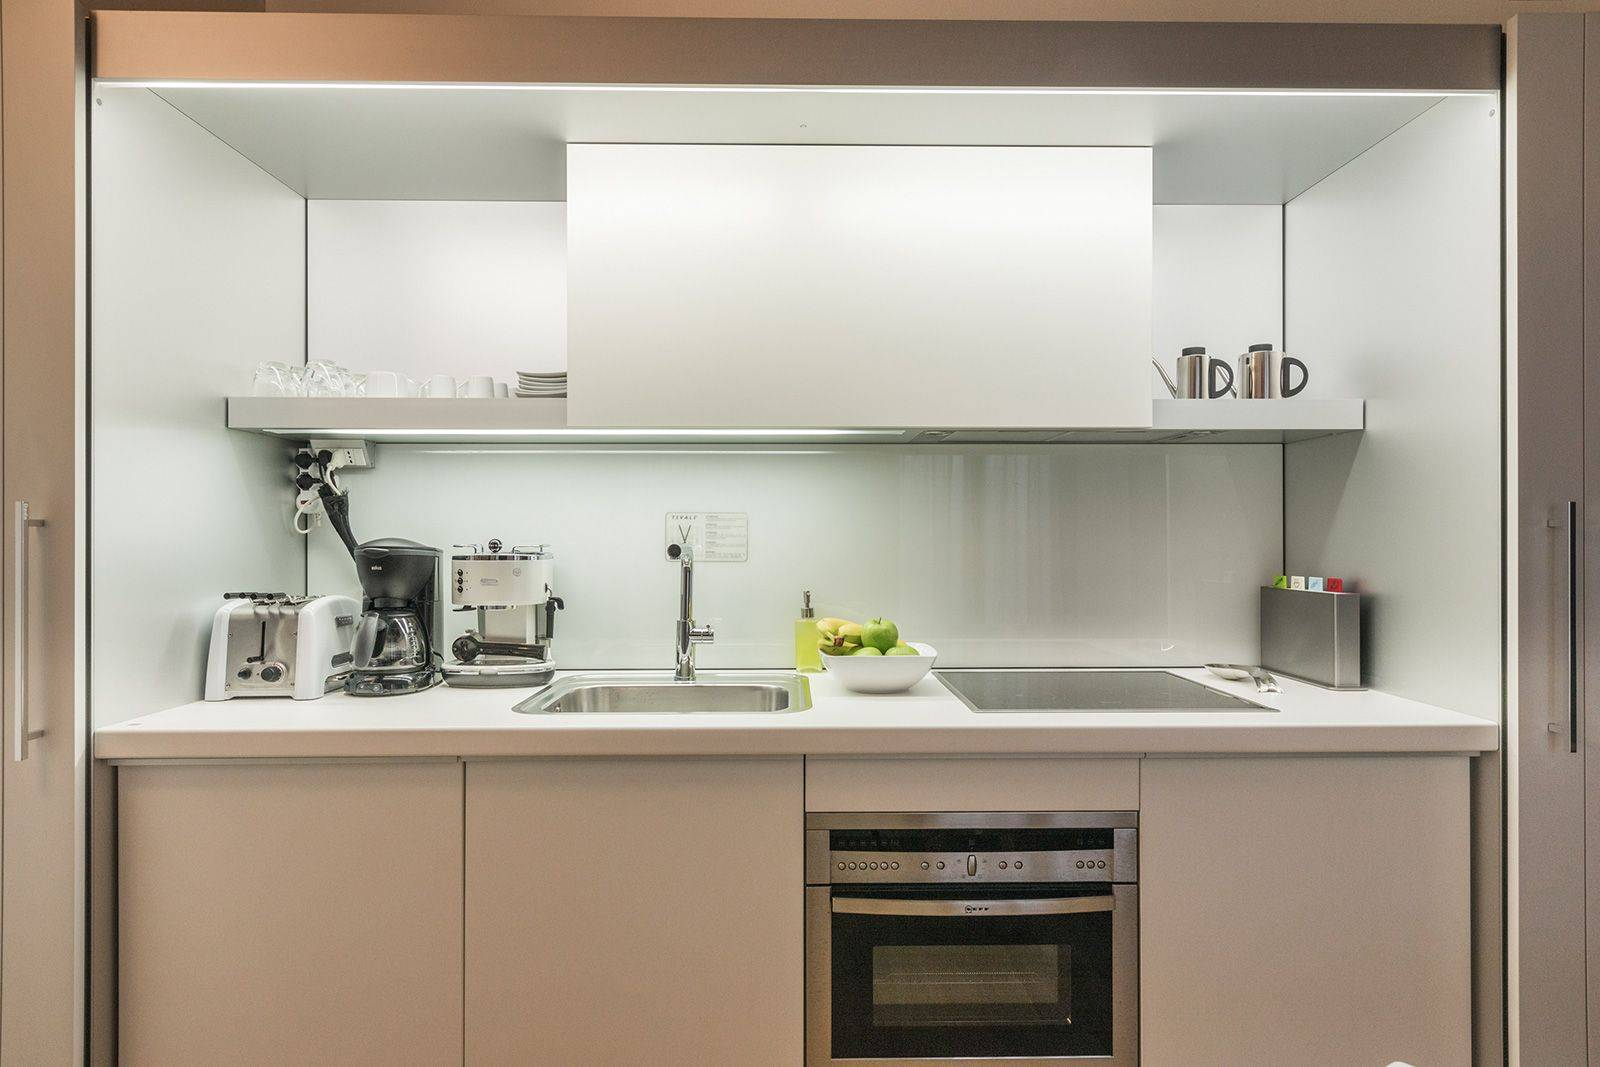 the kitchen is equipped with many useful appliances